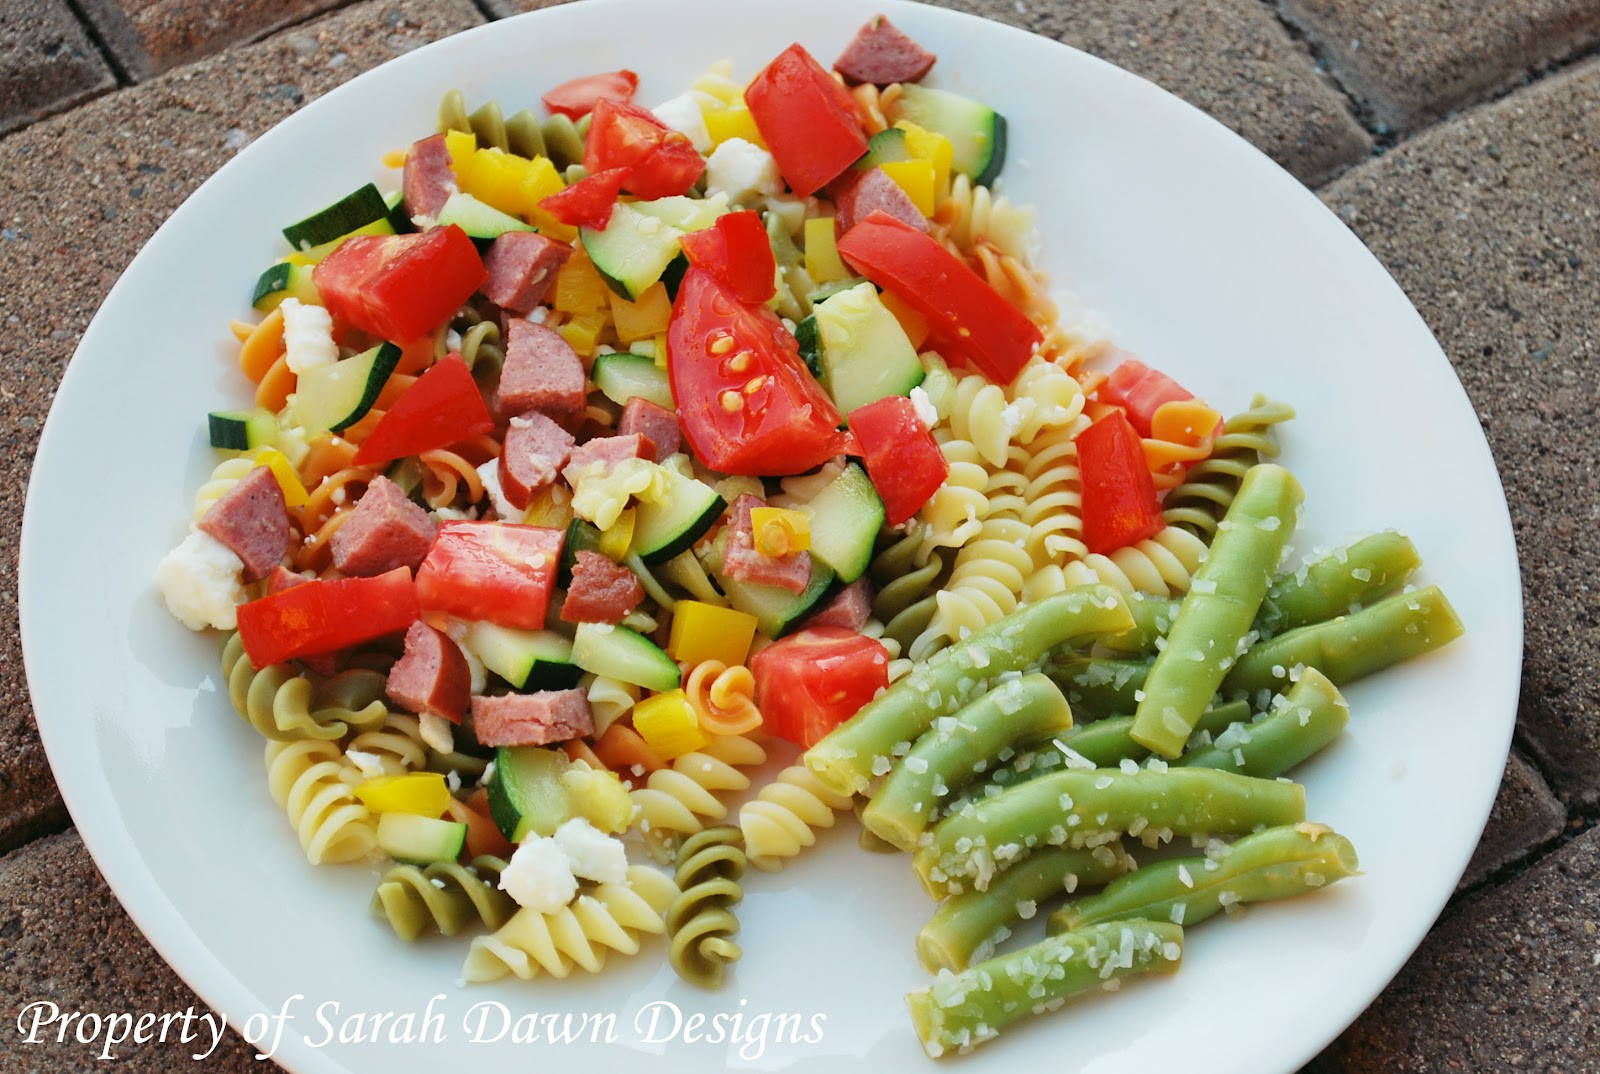 Light Healthy Dinner  Sarah Dawn Designs 20 Minute Meals Light and Healthy Pasta